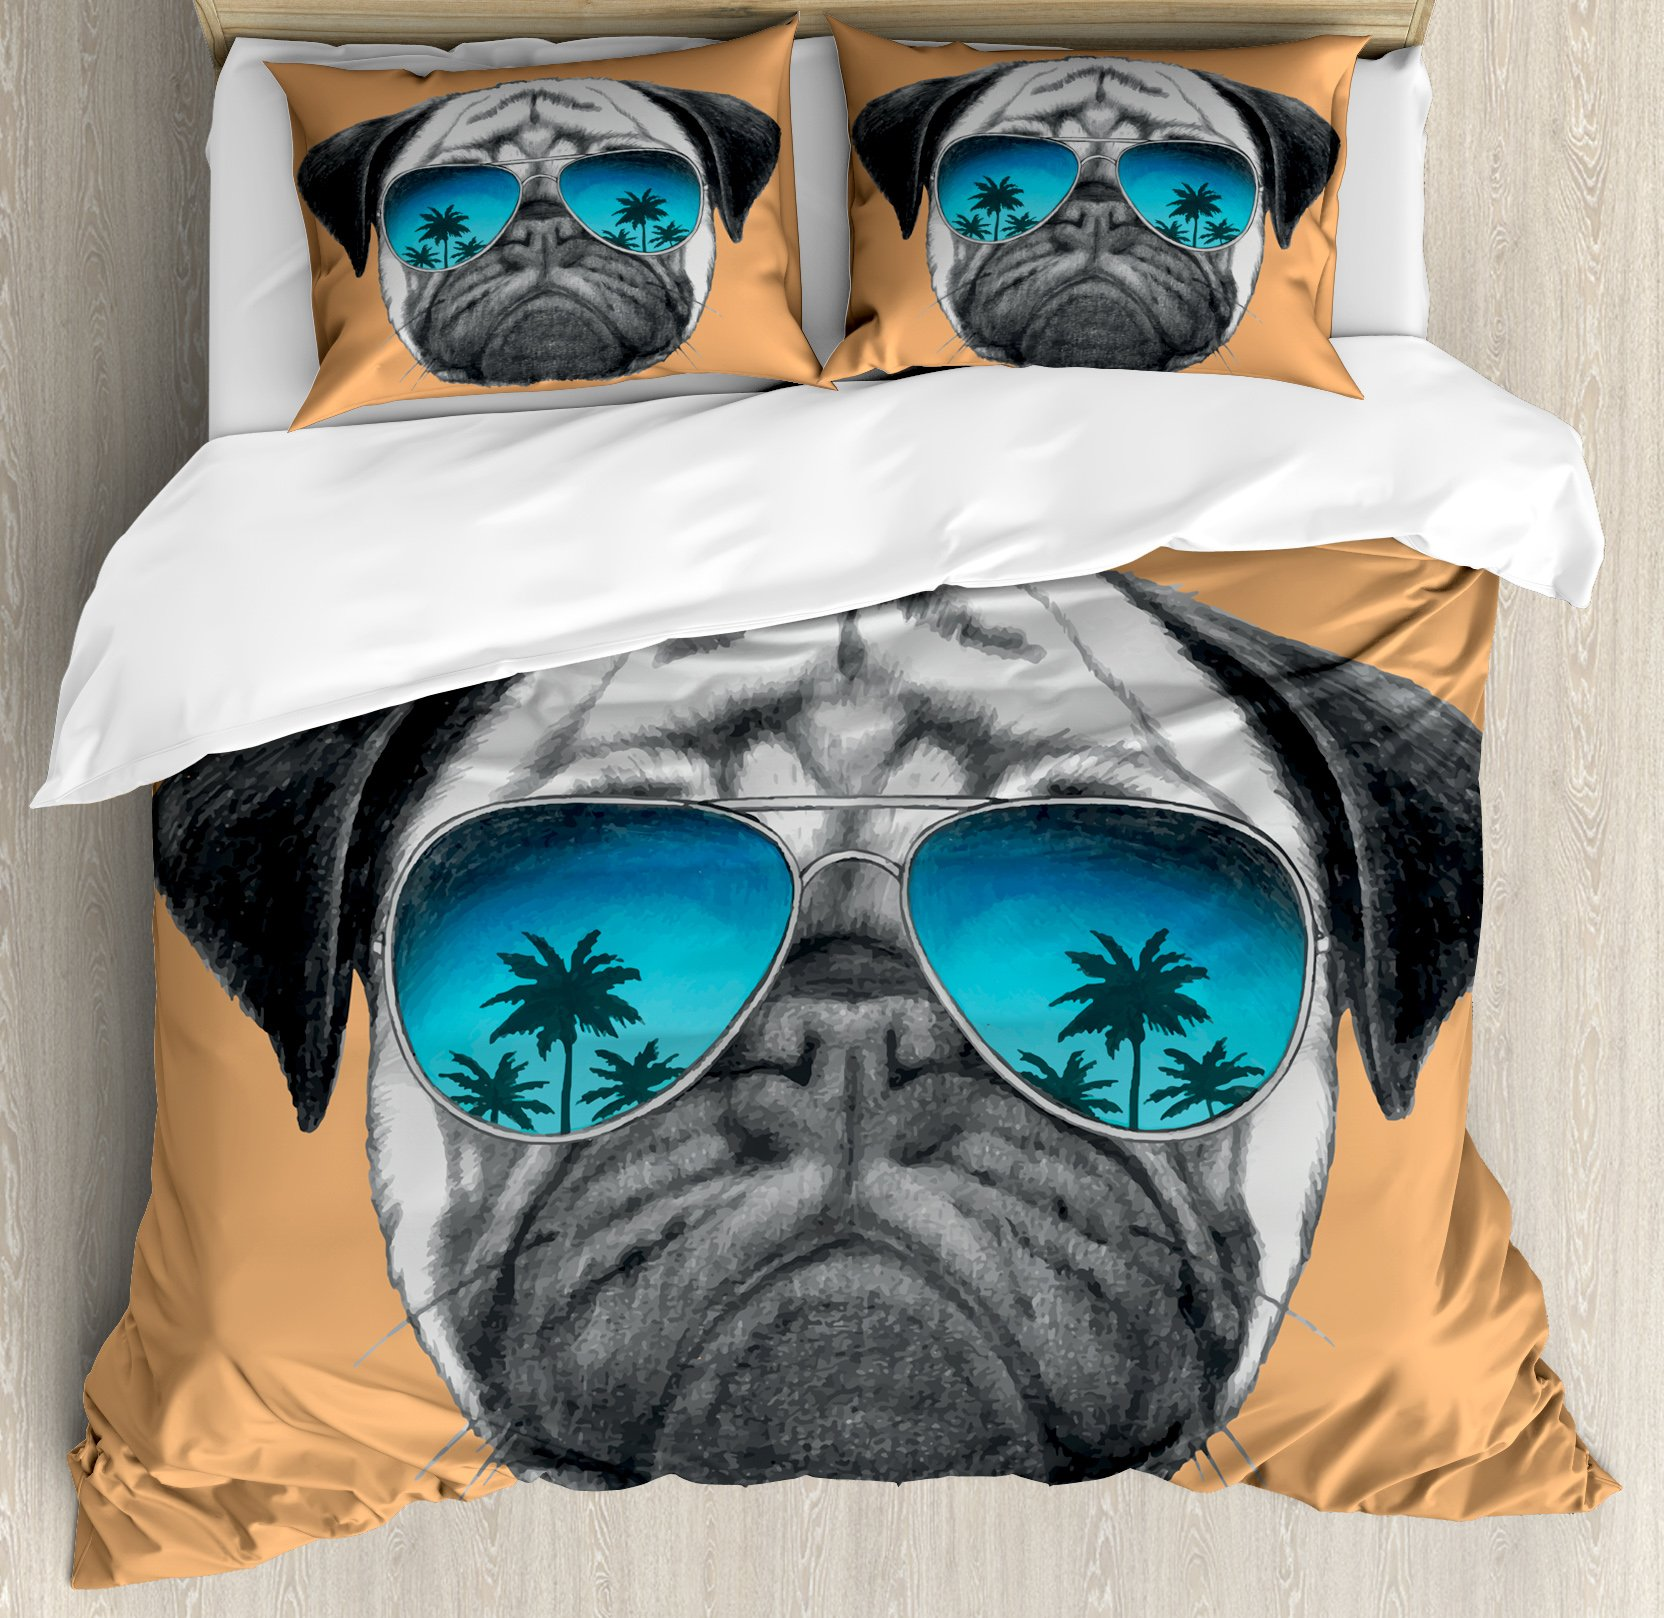 Pug Duvet Cover Set King Size by Ambesonne, Dog with Reflecting Aviators Palm Trees Tropical Environment Cool Pet Animal, Decorative 3 Piece Bedding Set with 2 Pillow Shams, Black Orange Blue